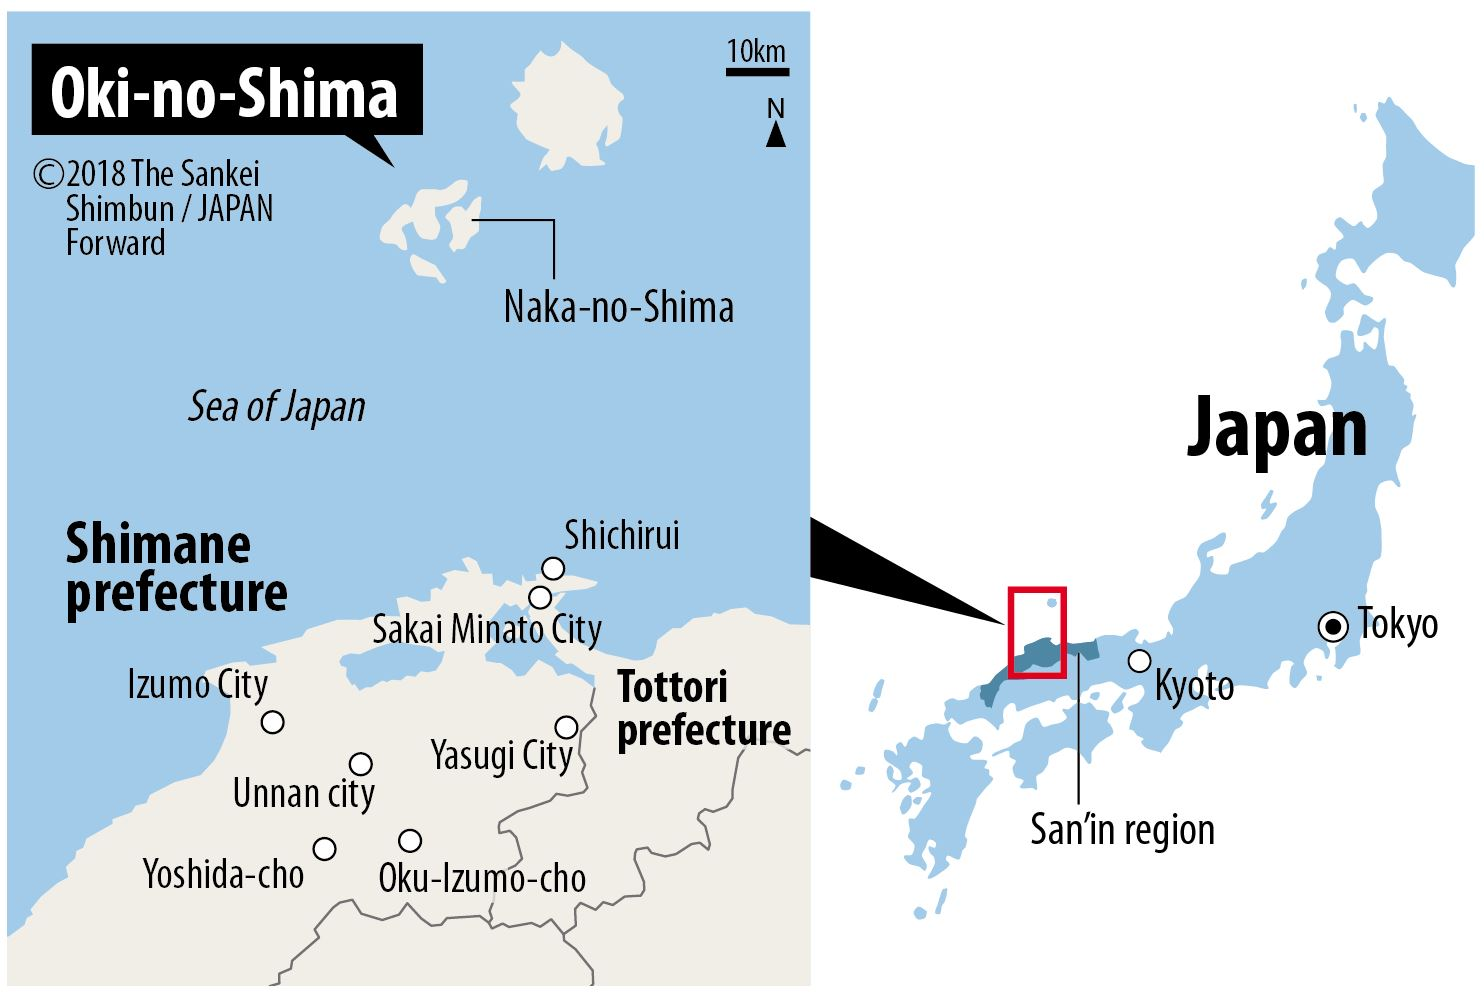 【JF】map of Oki-no-shima